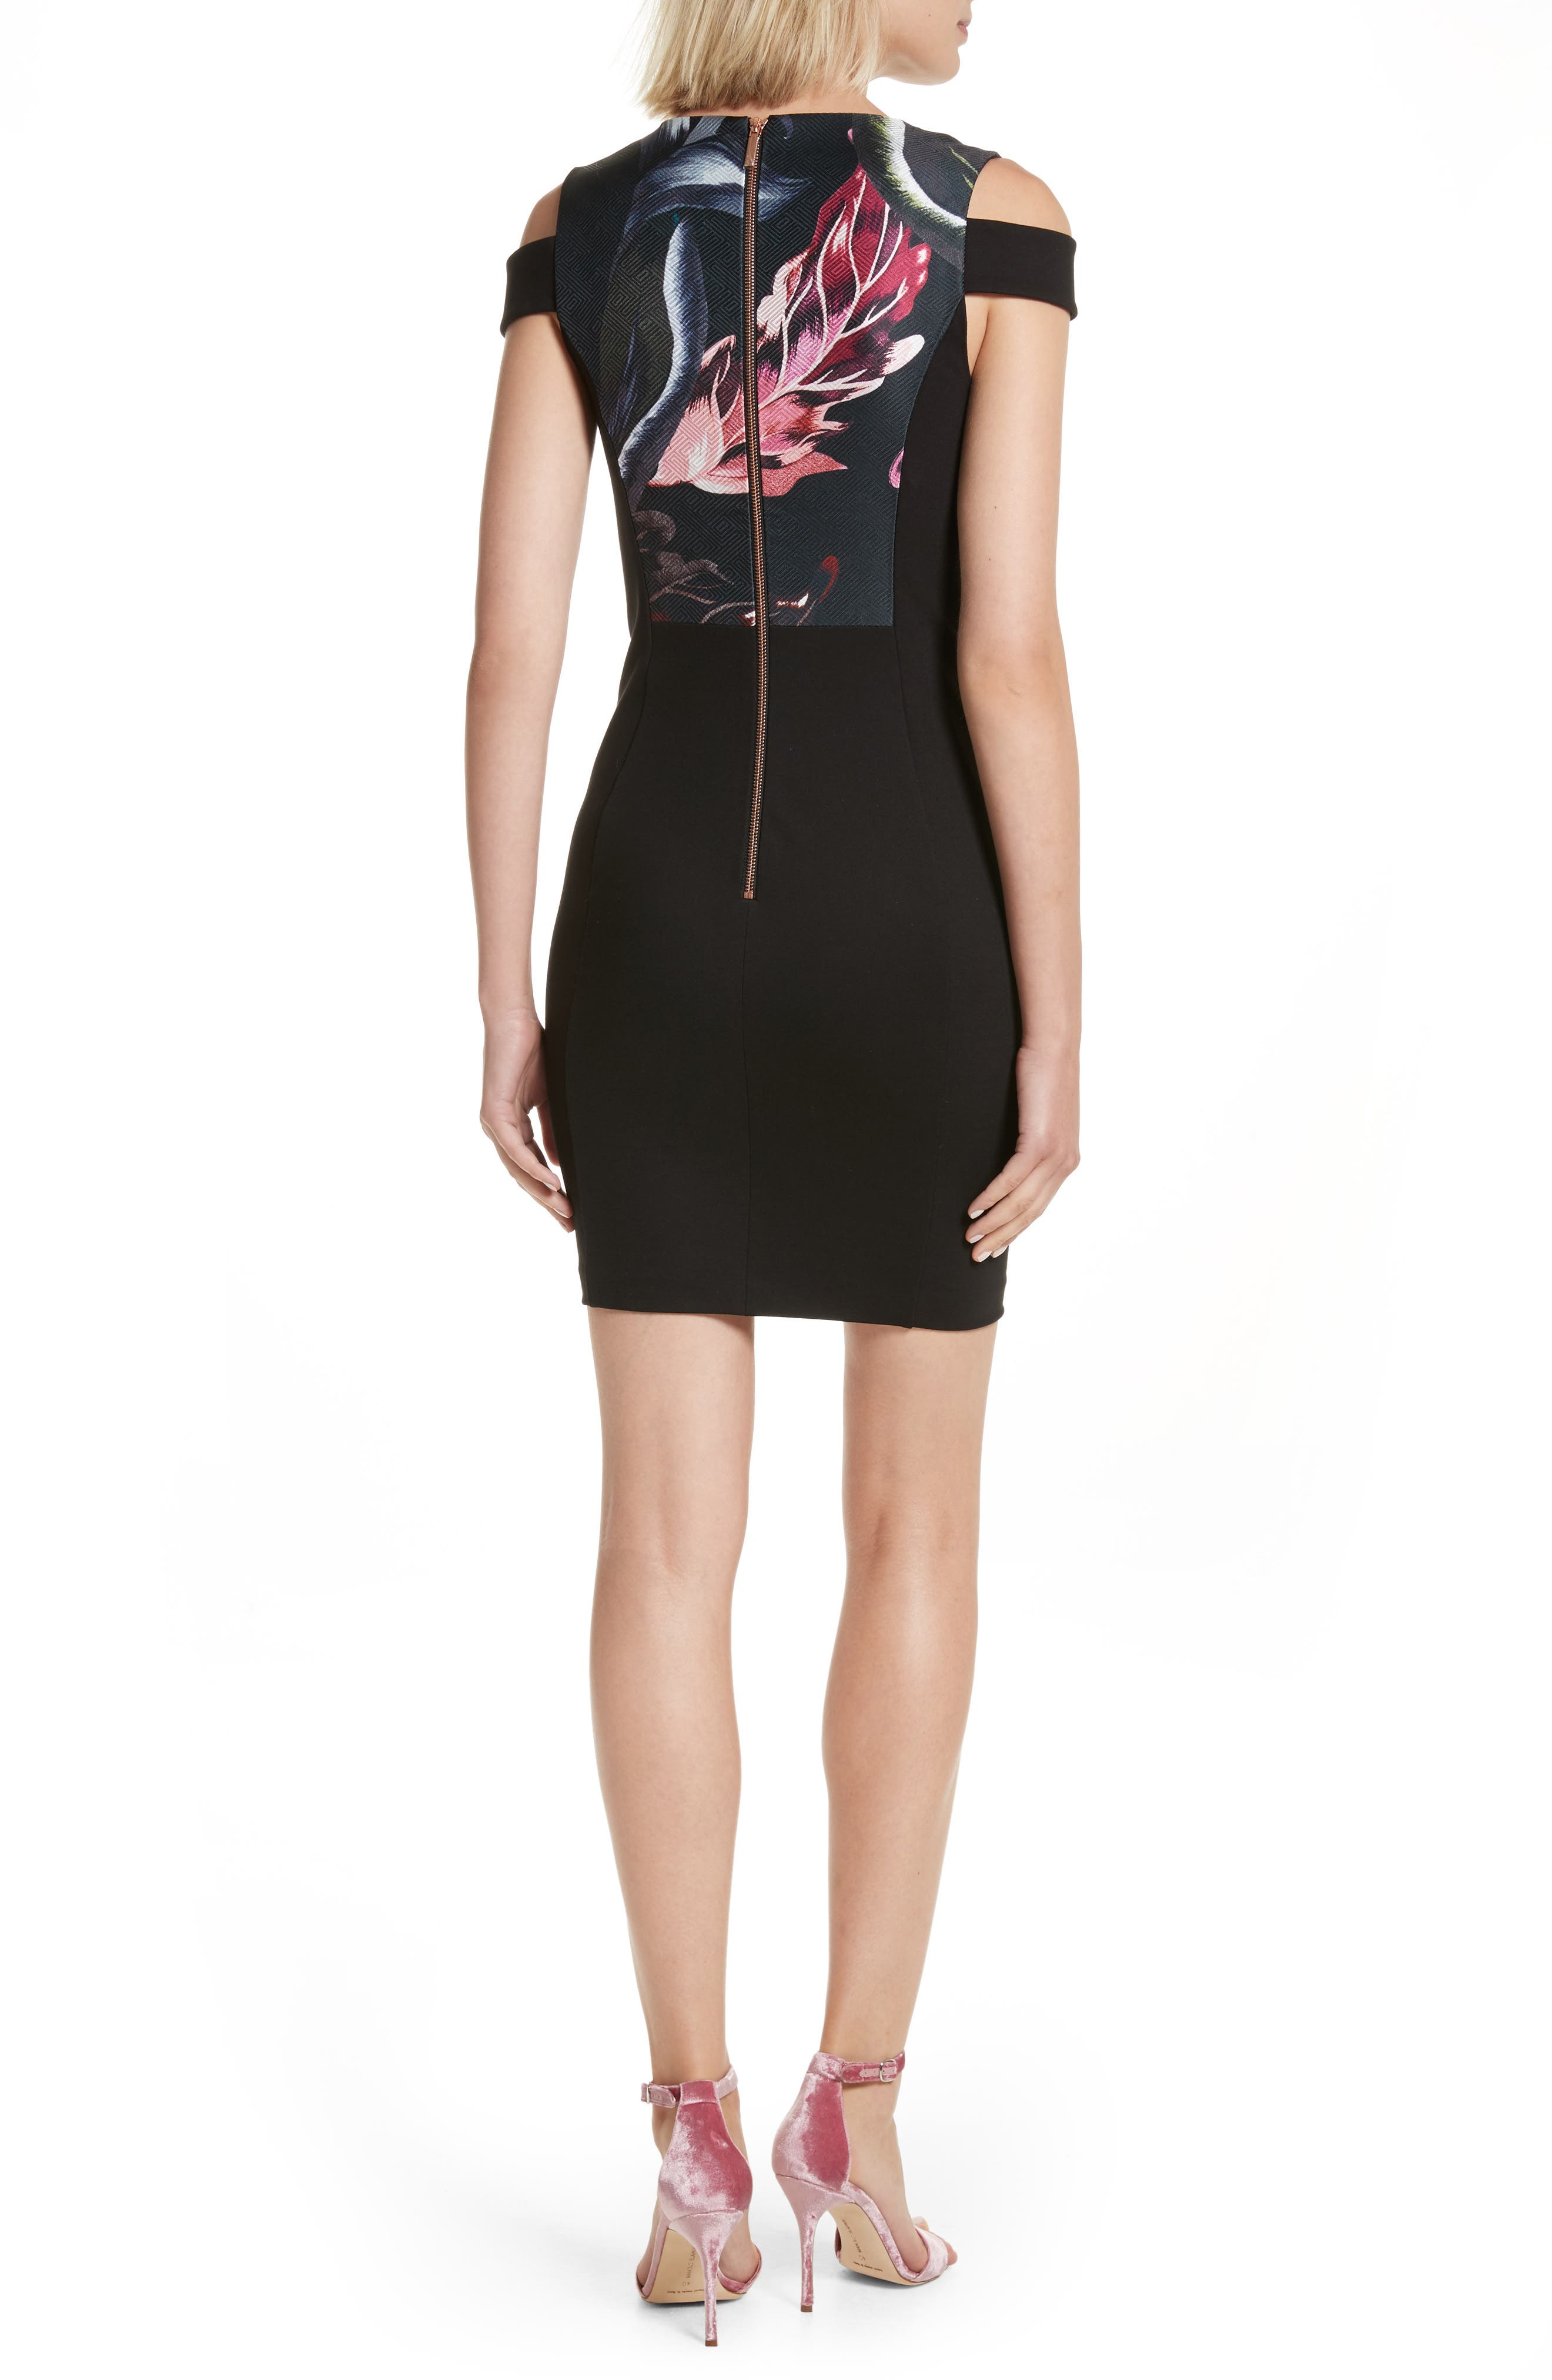 Leeash Eden Body Con Dress,                             Alternate thumbnail 2, color,                             001